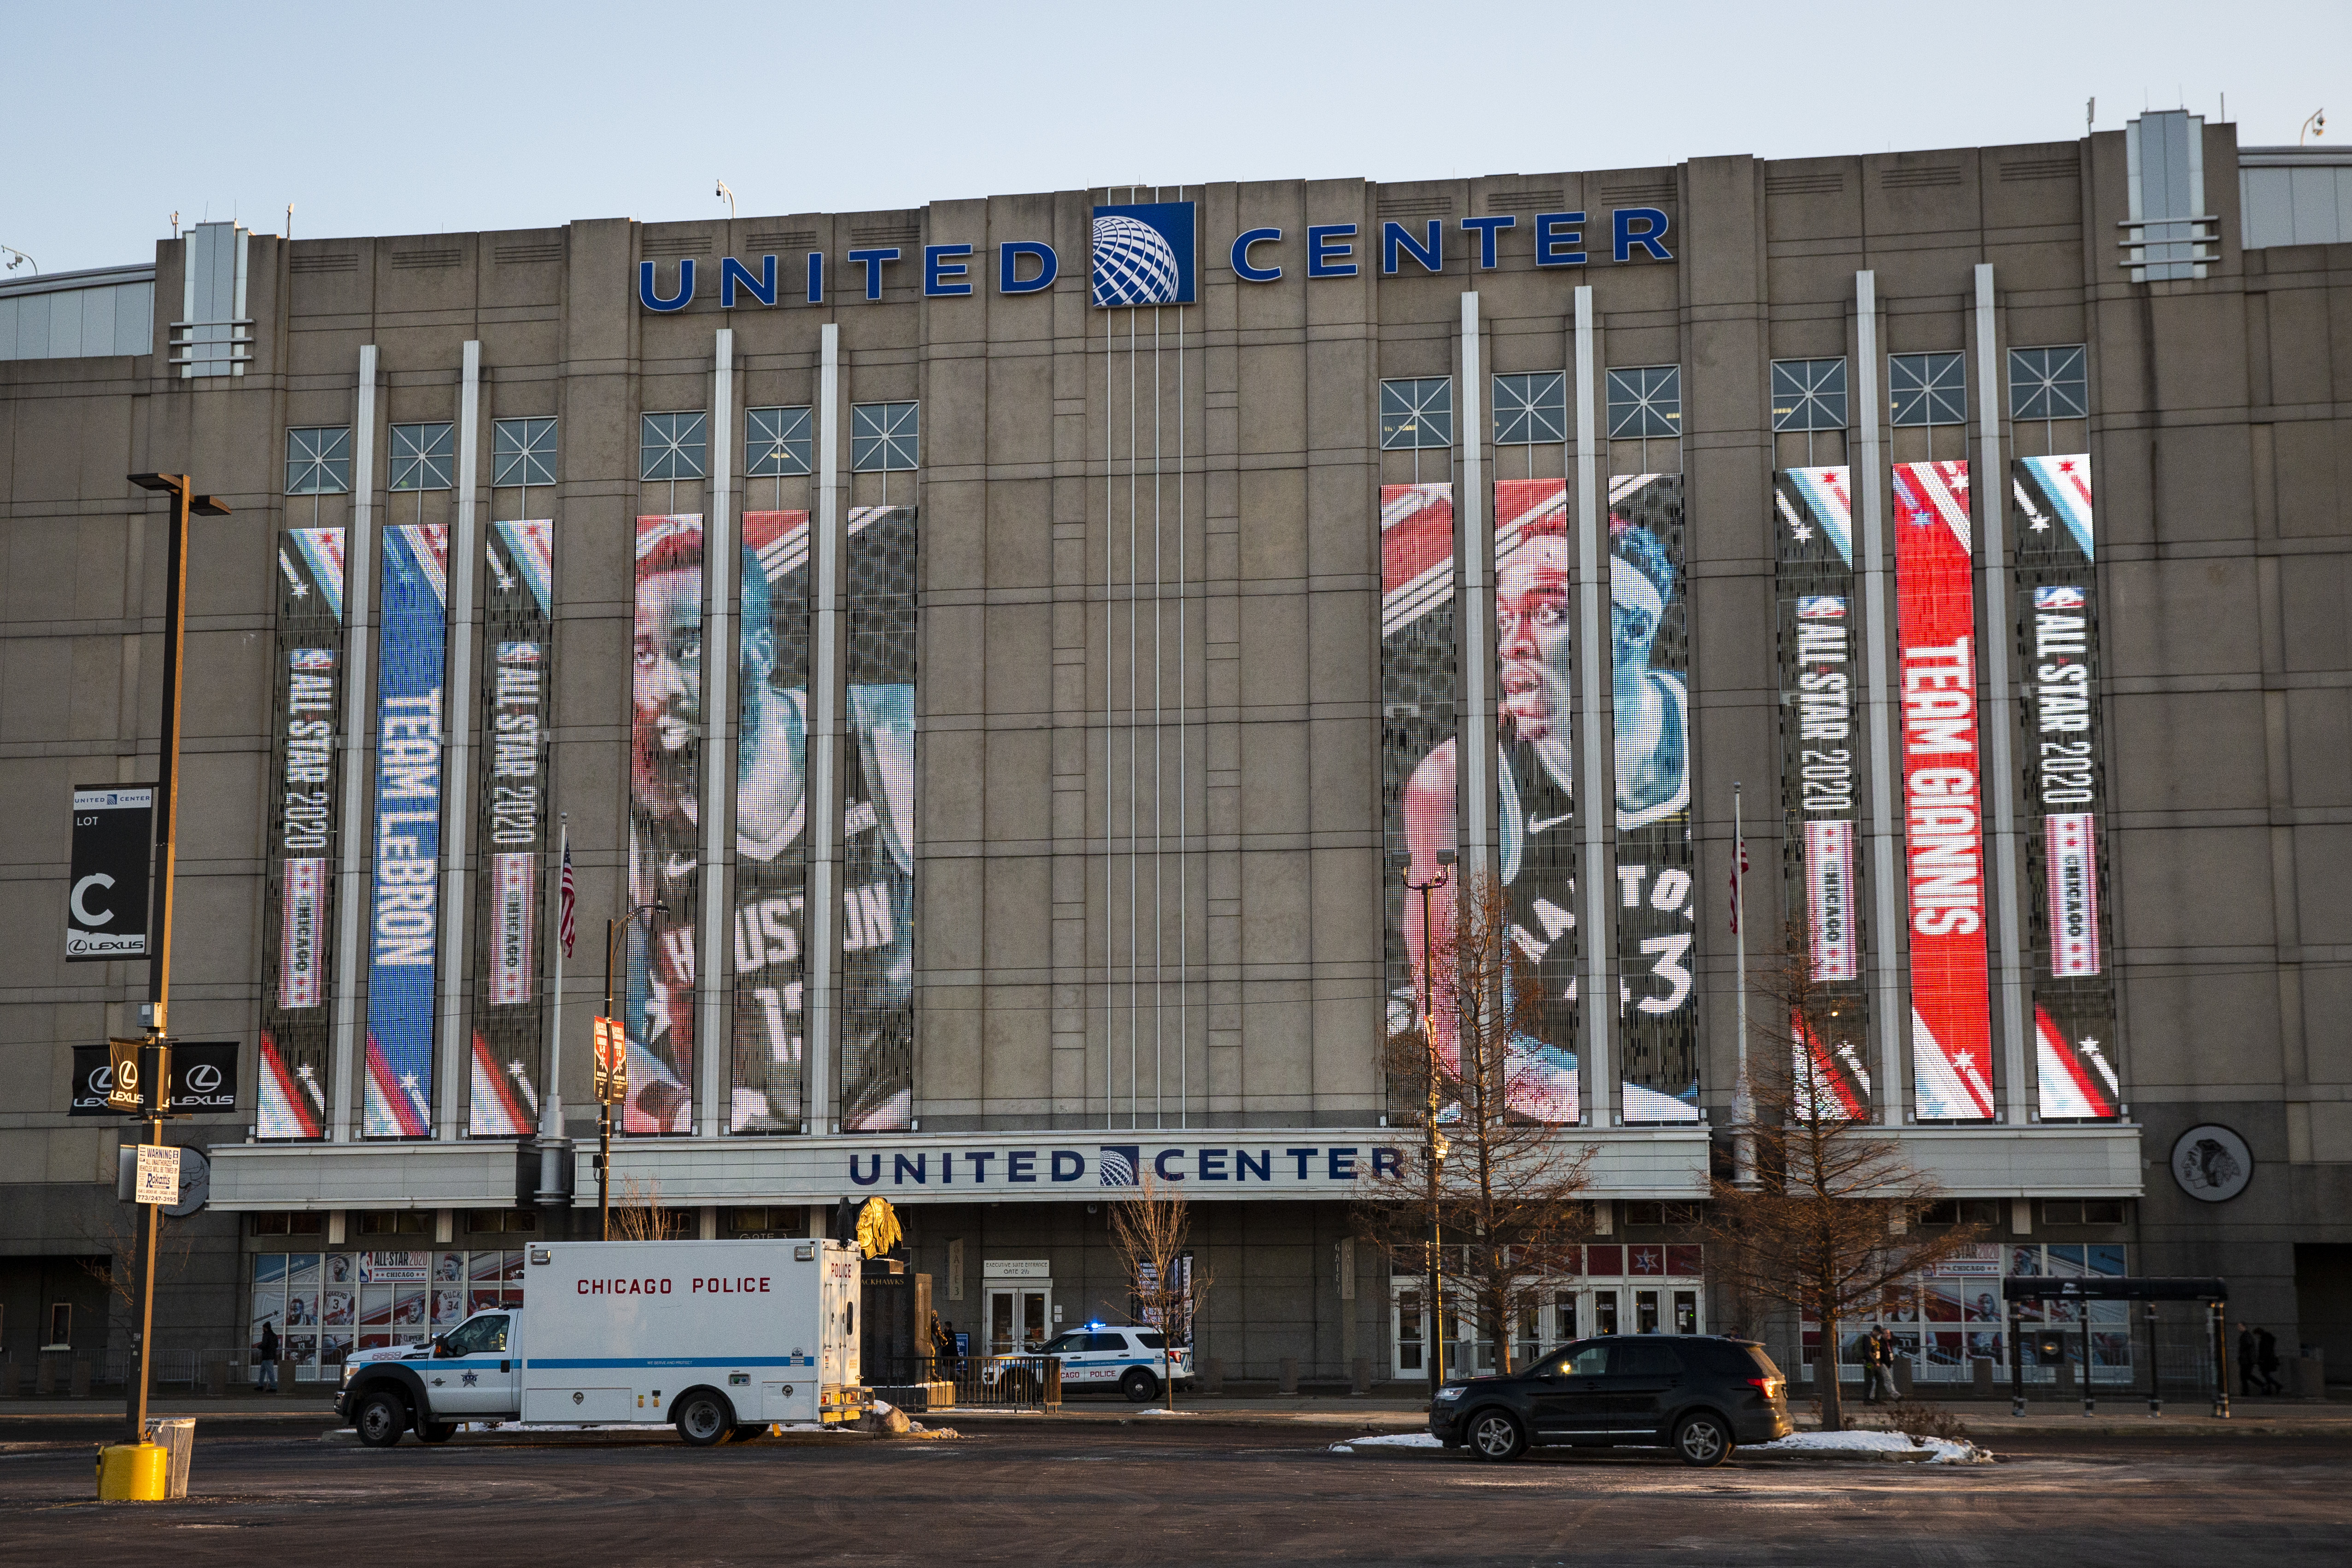 Guns were seized at the United Center before the All Star Game